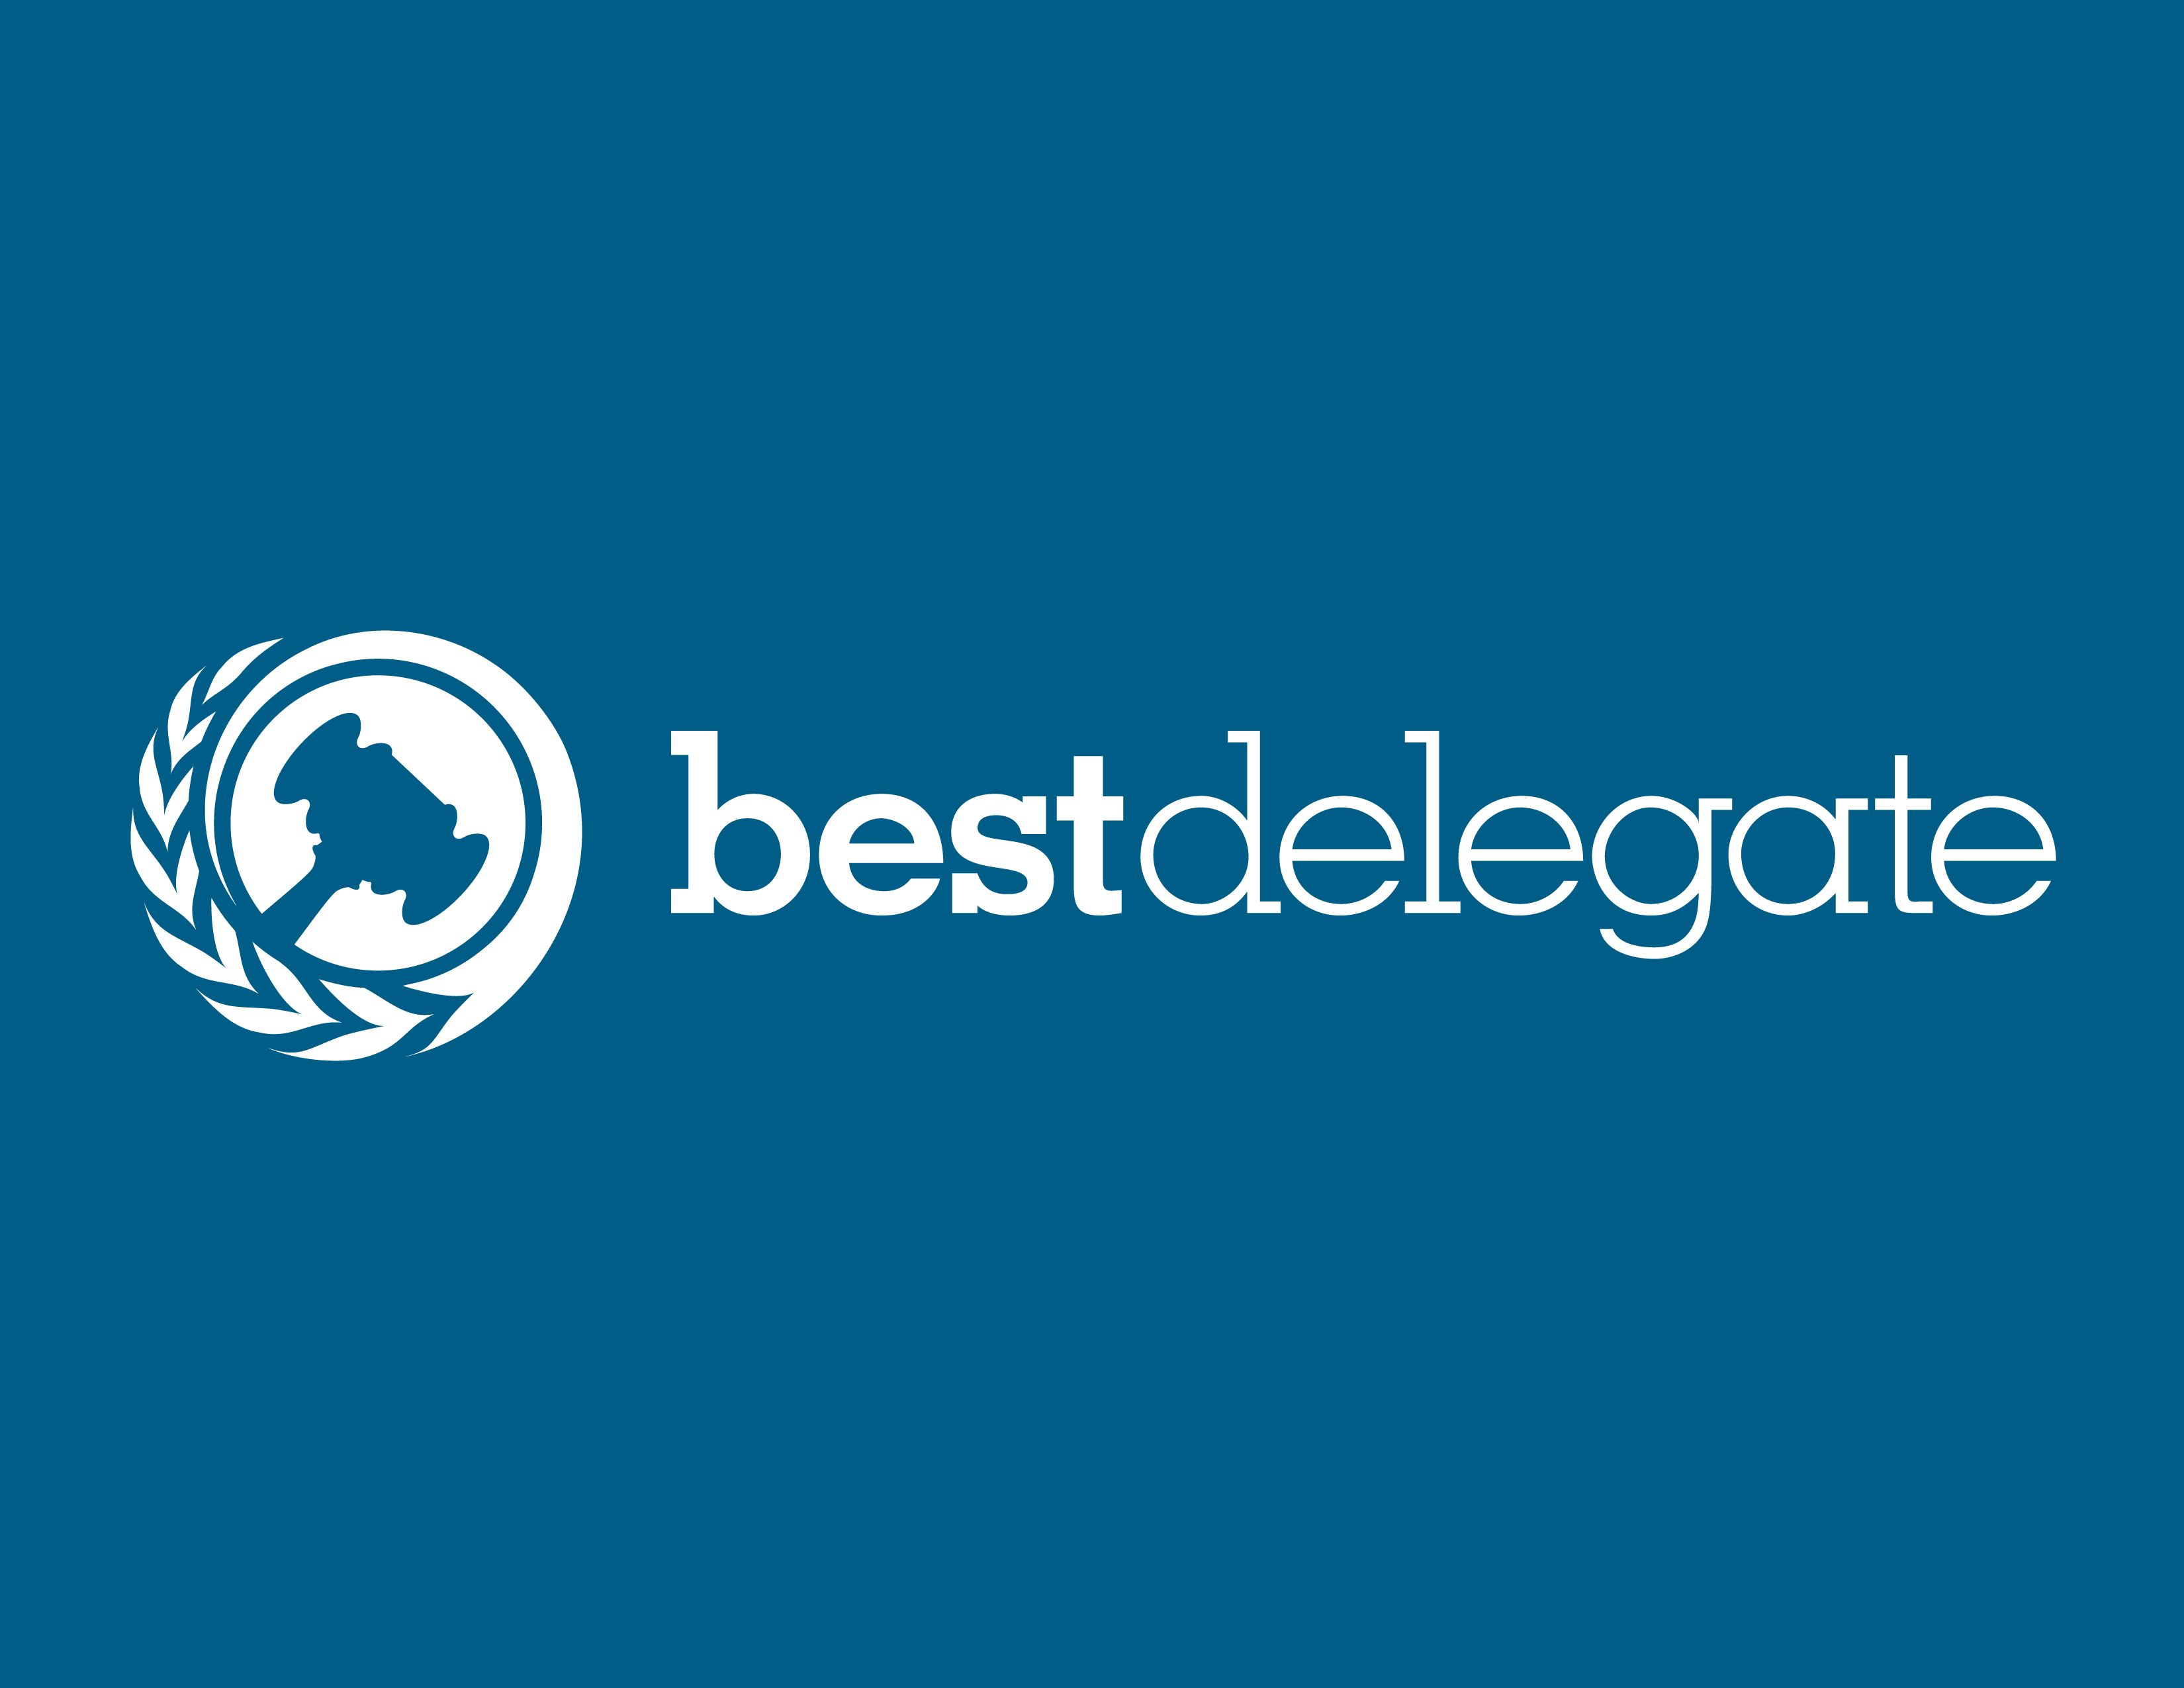 best delegate model united nations that s what i ultimately want best delegate model united nations that s what i ultimately want to